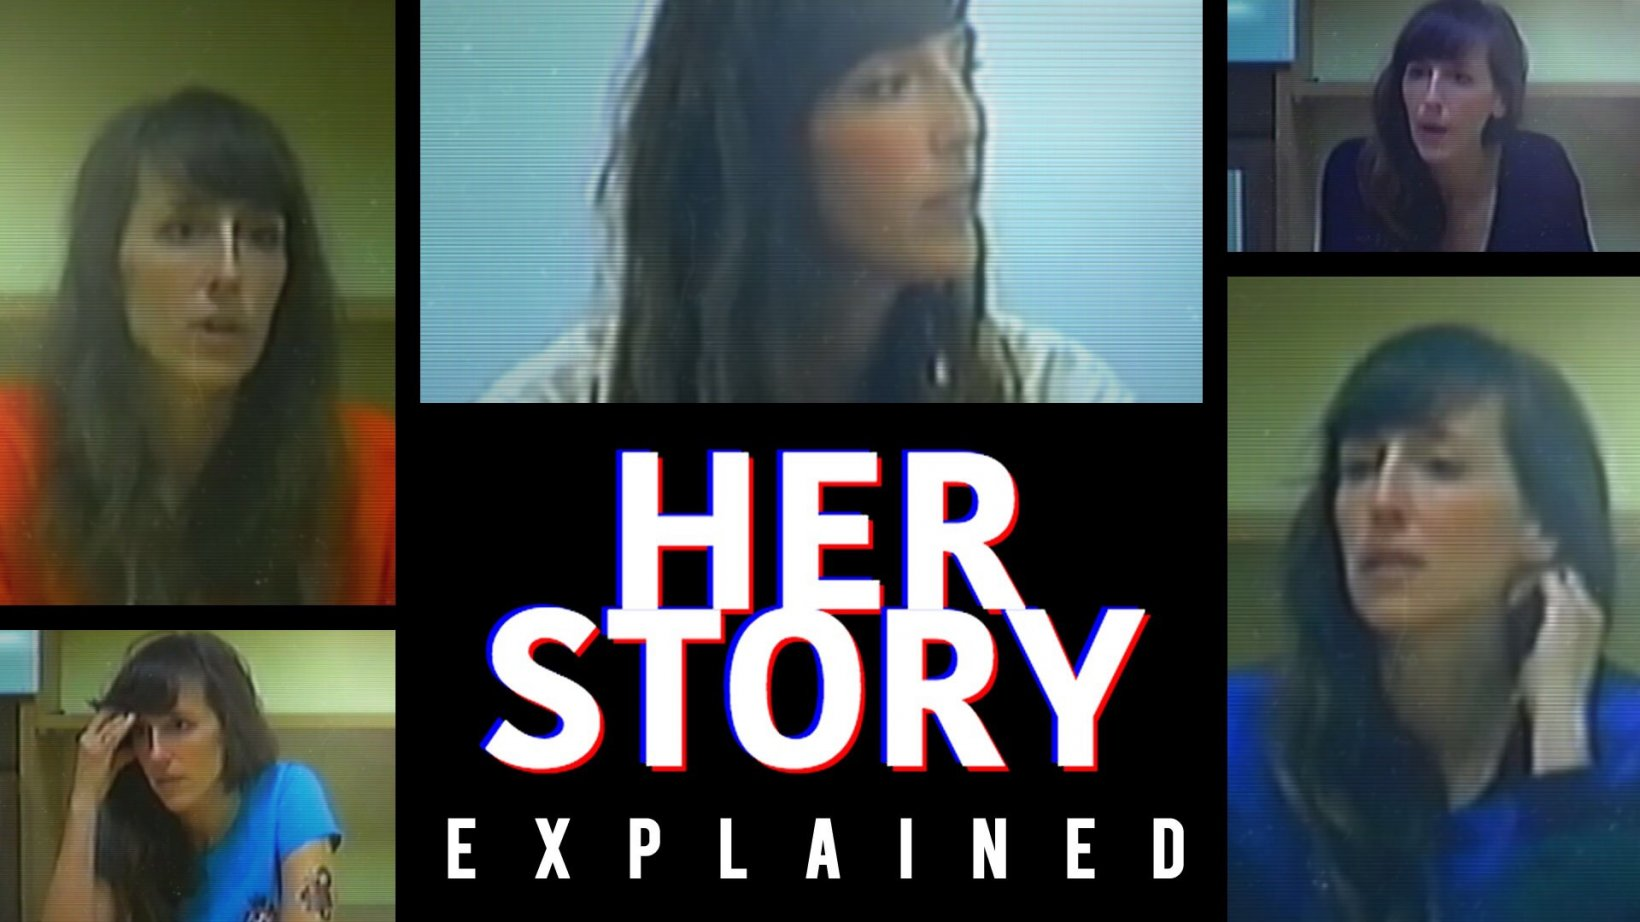 Her Story explained - the complete story walkthrough (Spoilers!)